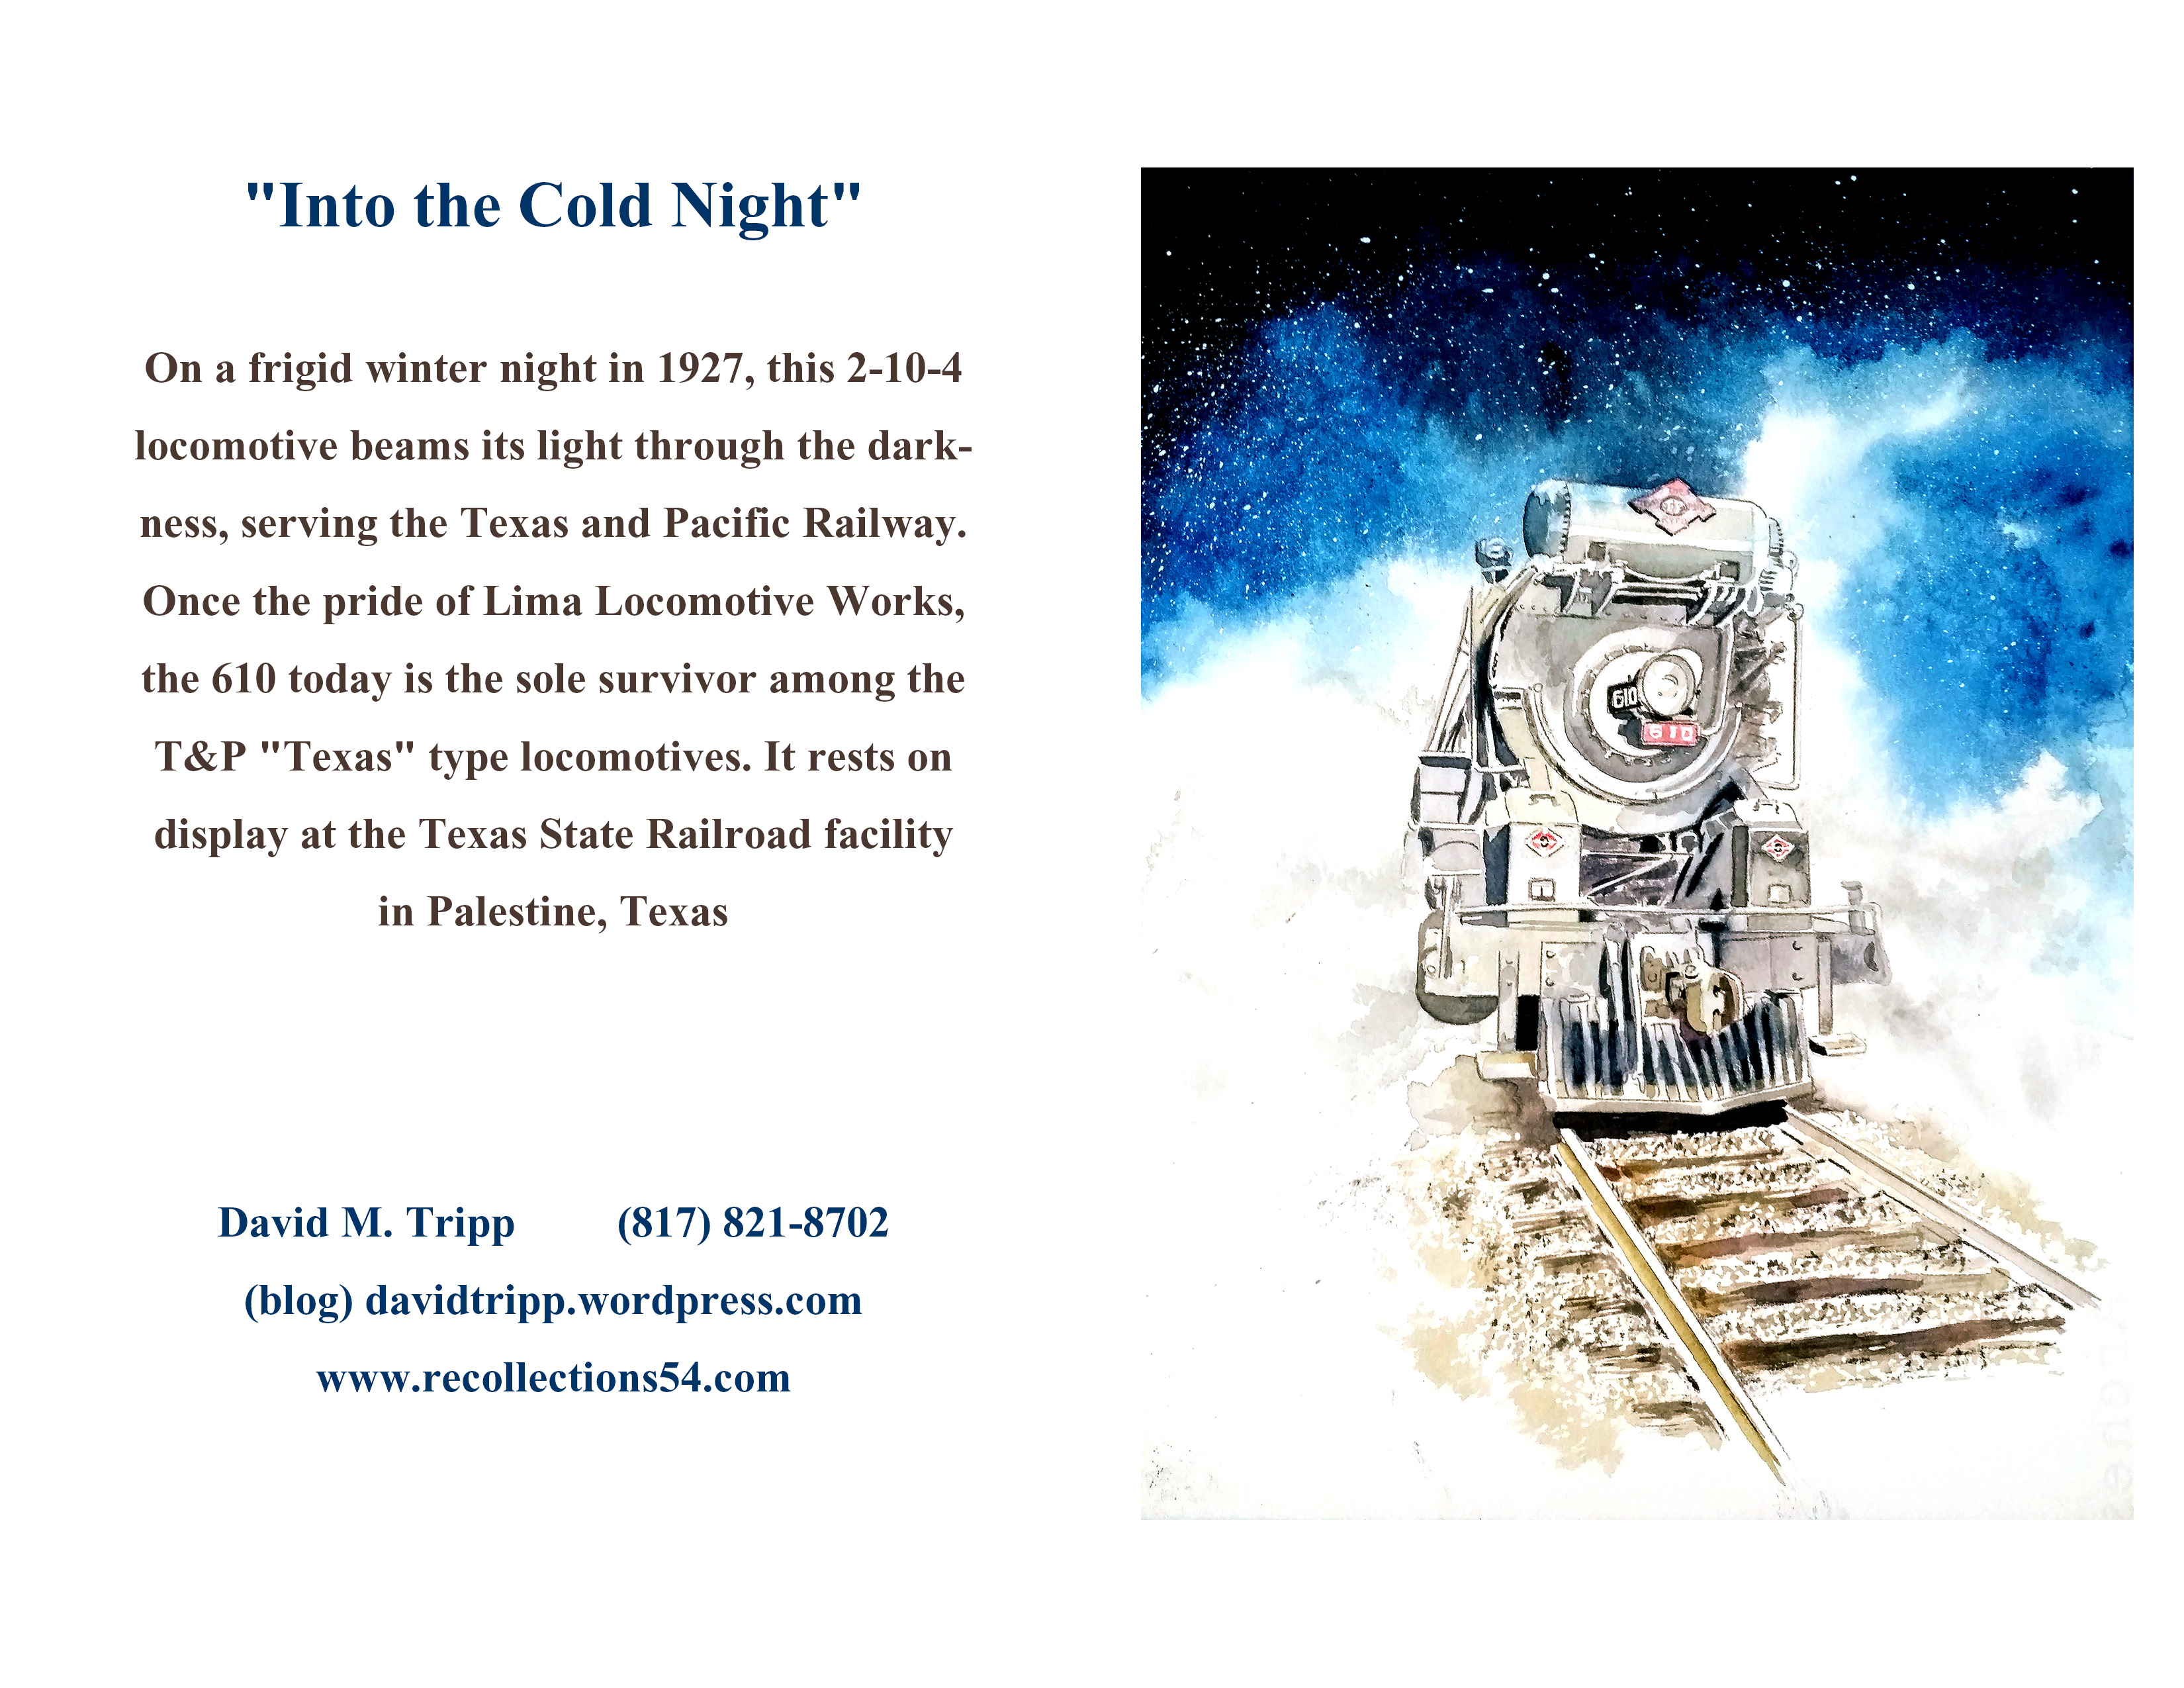 New greeting cards coming out recollections 54 the art of david tripp professional photographer and my new friend residing for now in palestine has been formatting my latest train watercolors into 57 greeting cards im m4hsunfo